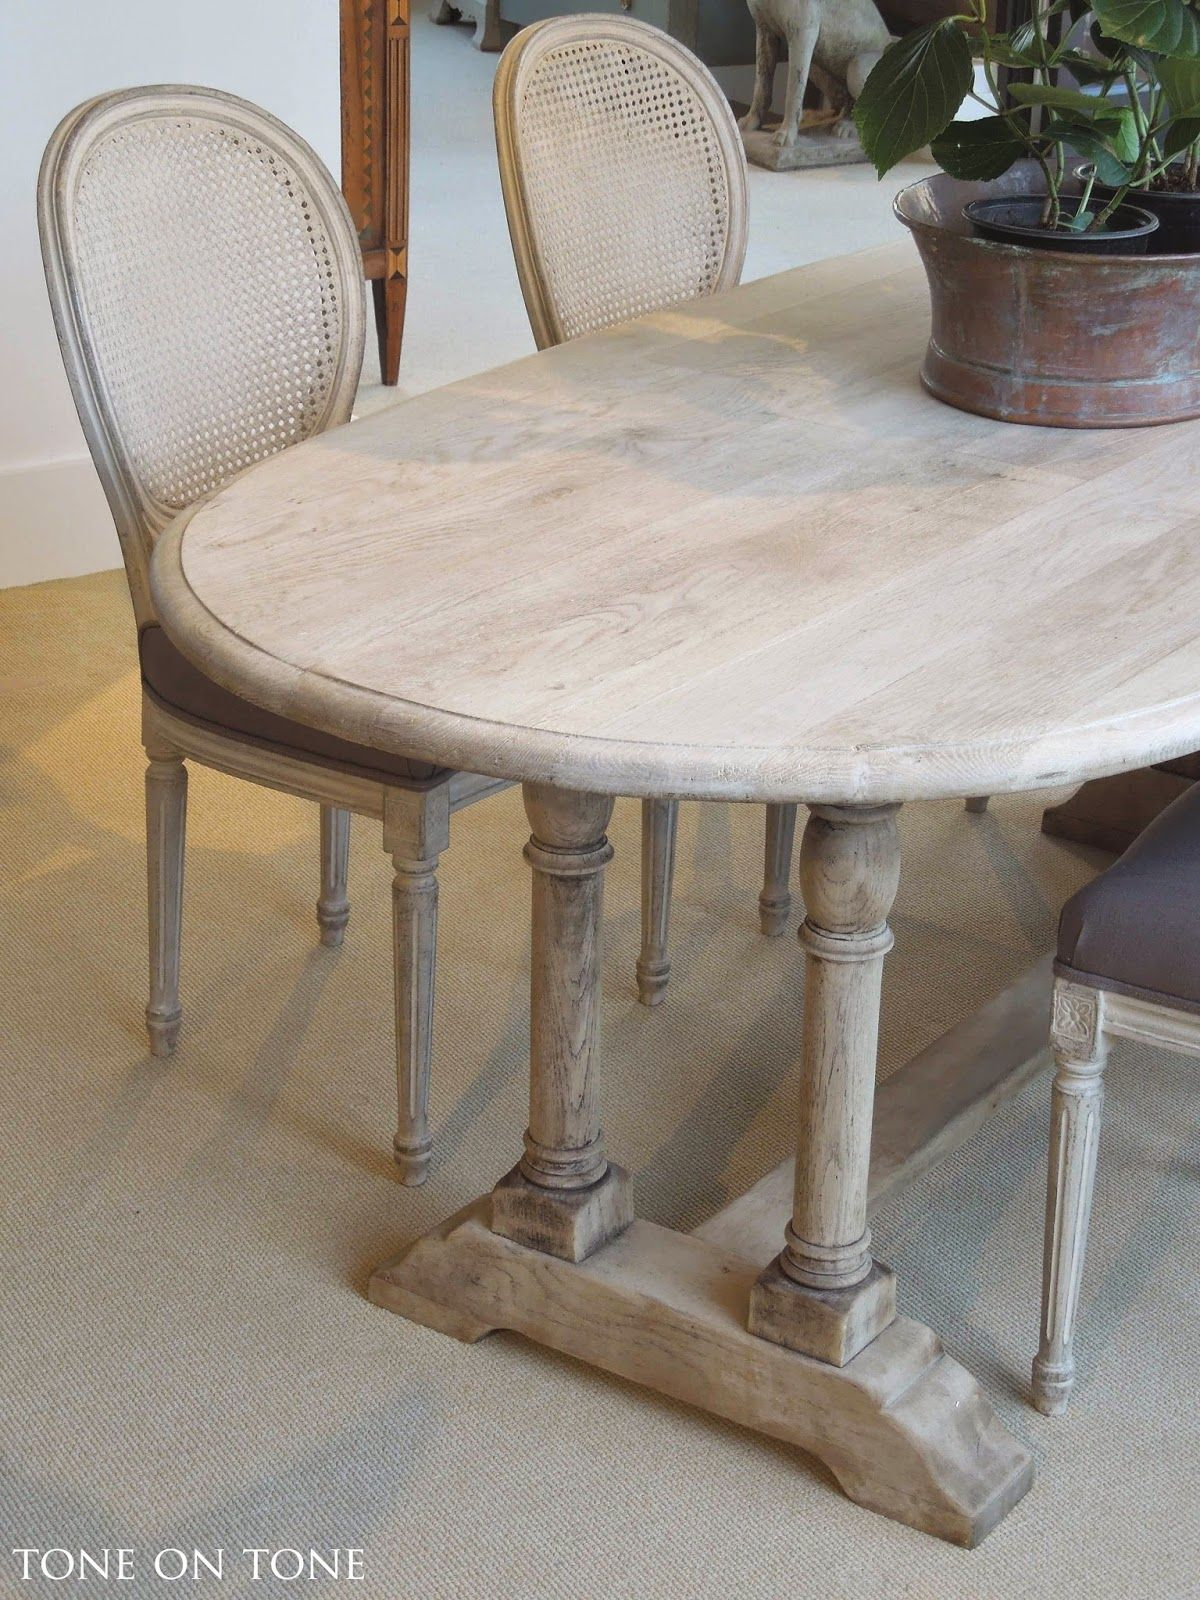 oak kitchen table brushed nickel faucet here is a 19th century belgian bleached dining with oval top and trestle base